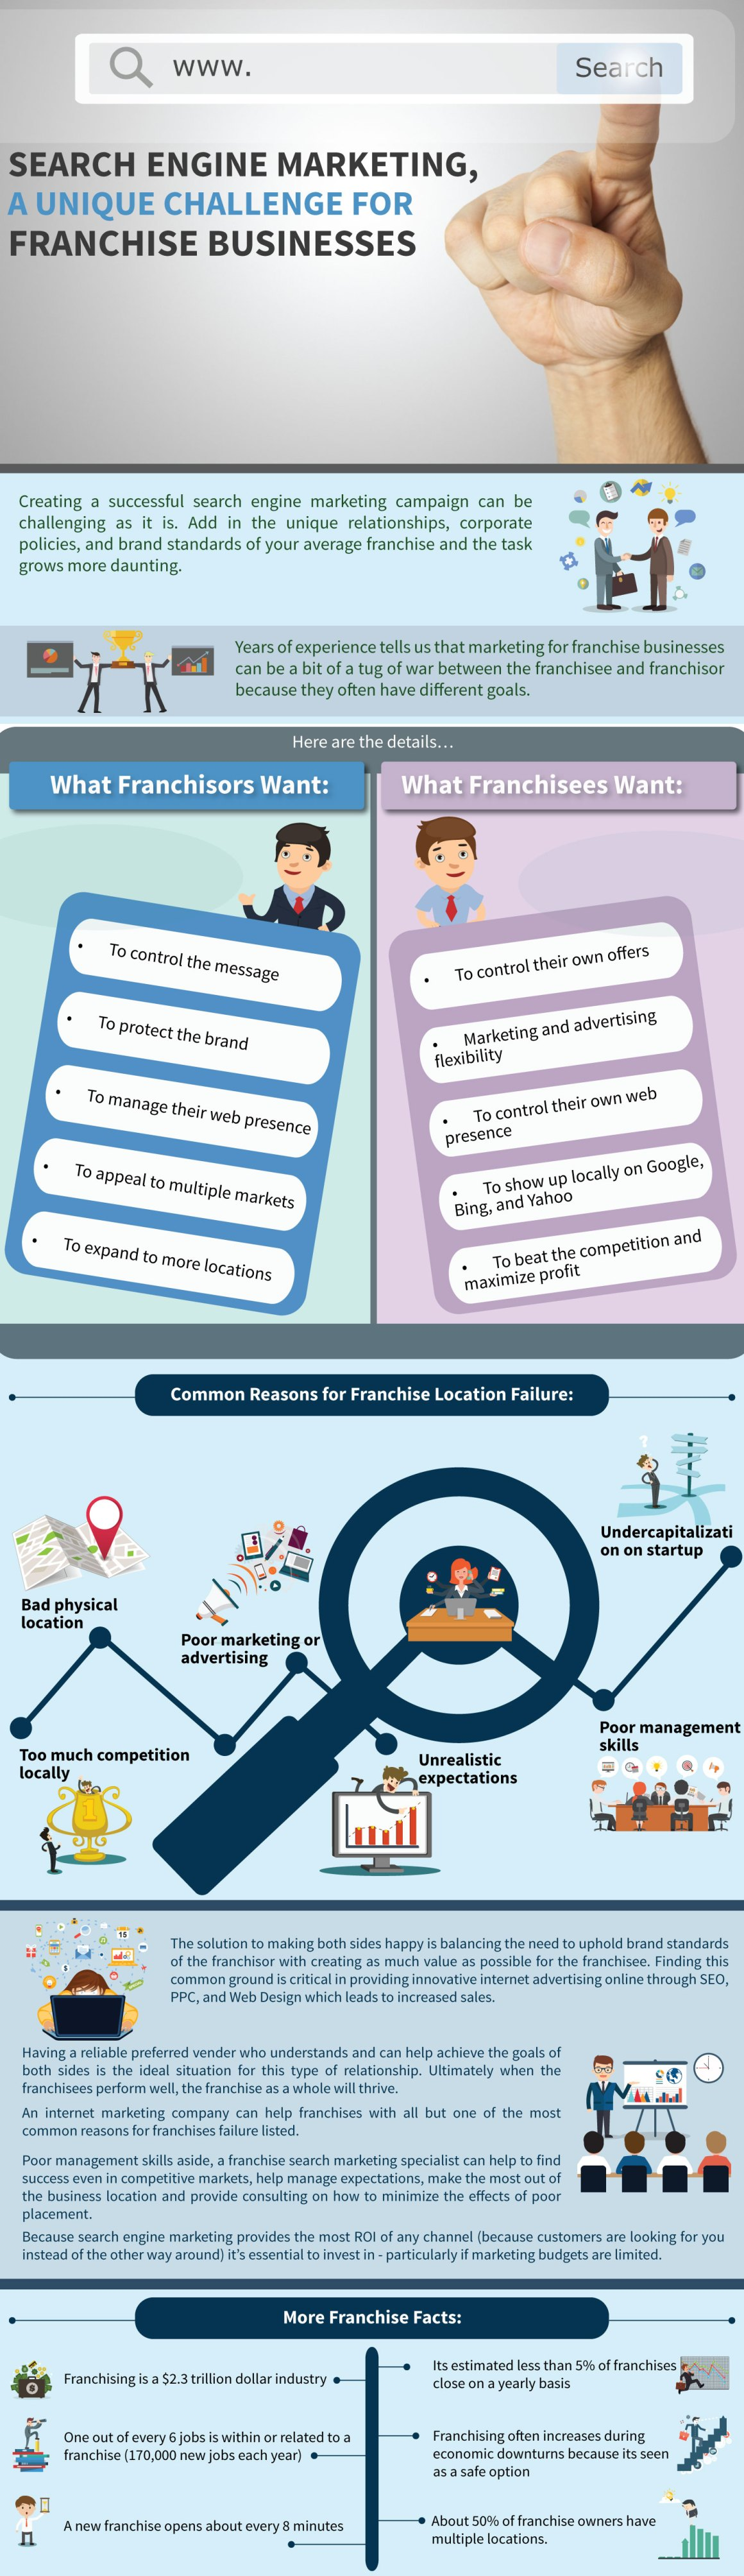 franchise-search-marketing-infographic